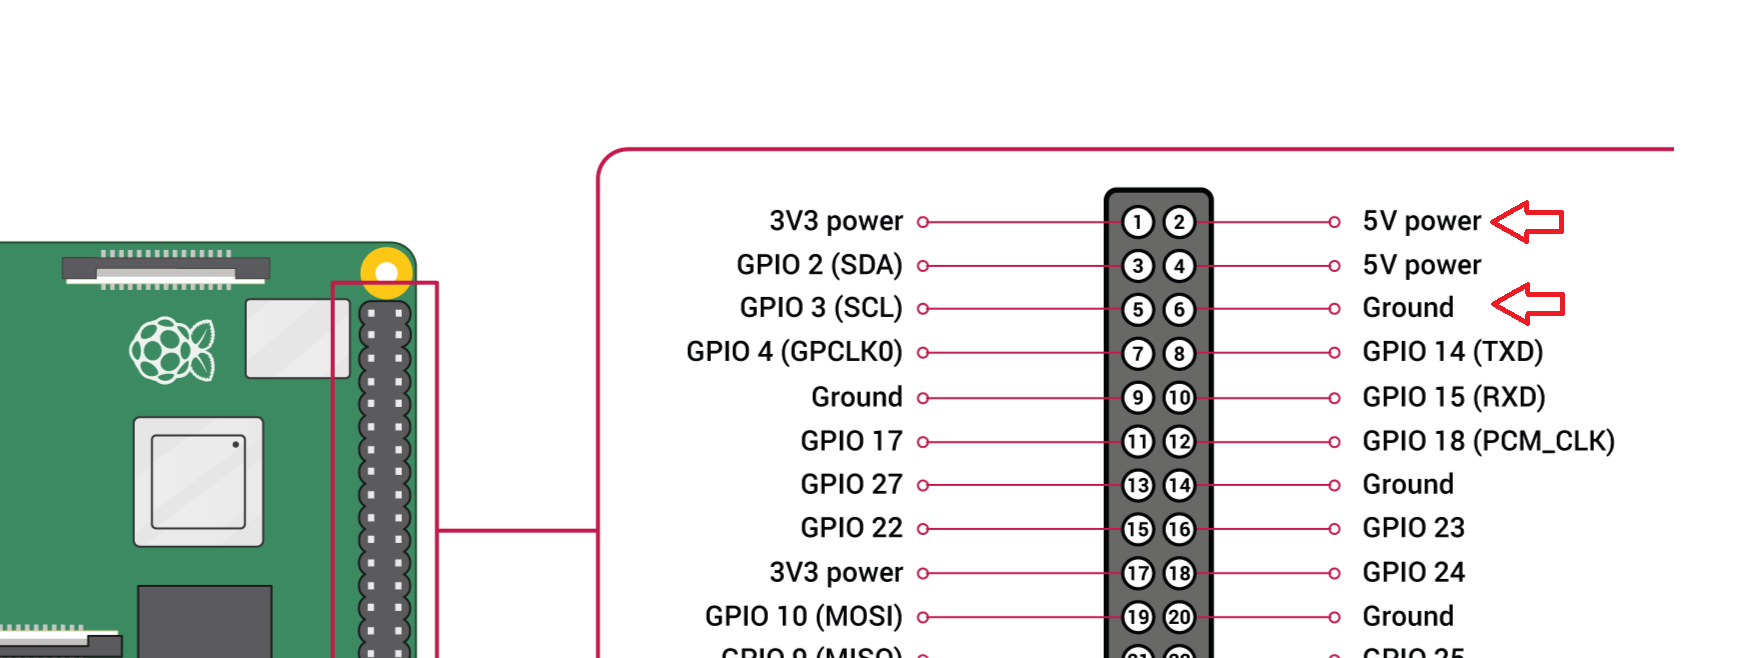 rpi pin header diagram with 5v and ground pins labeled